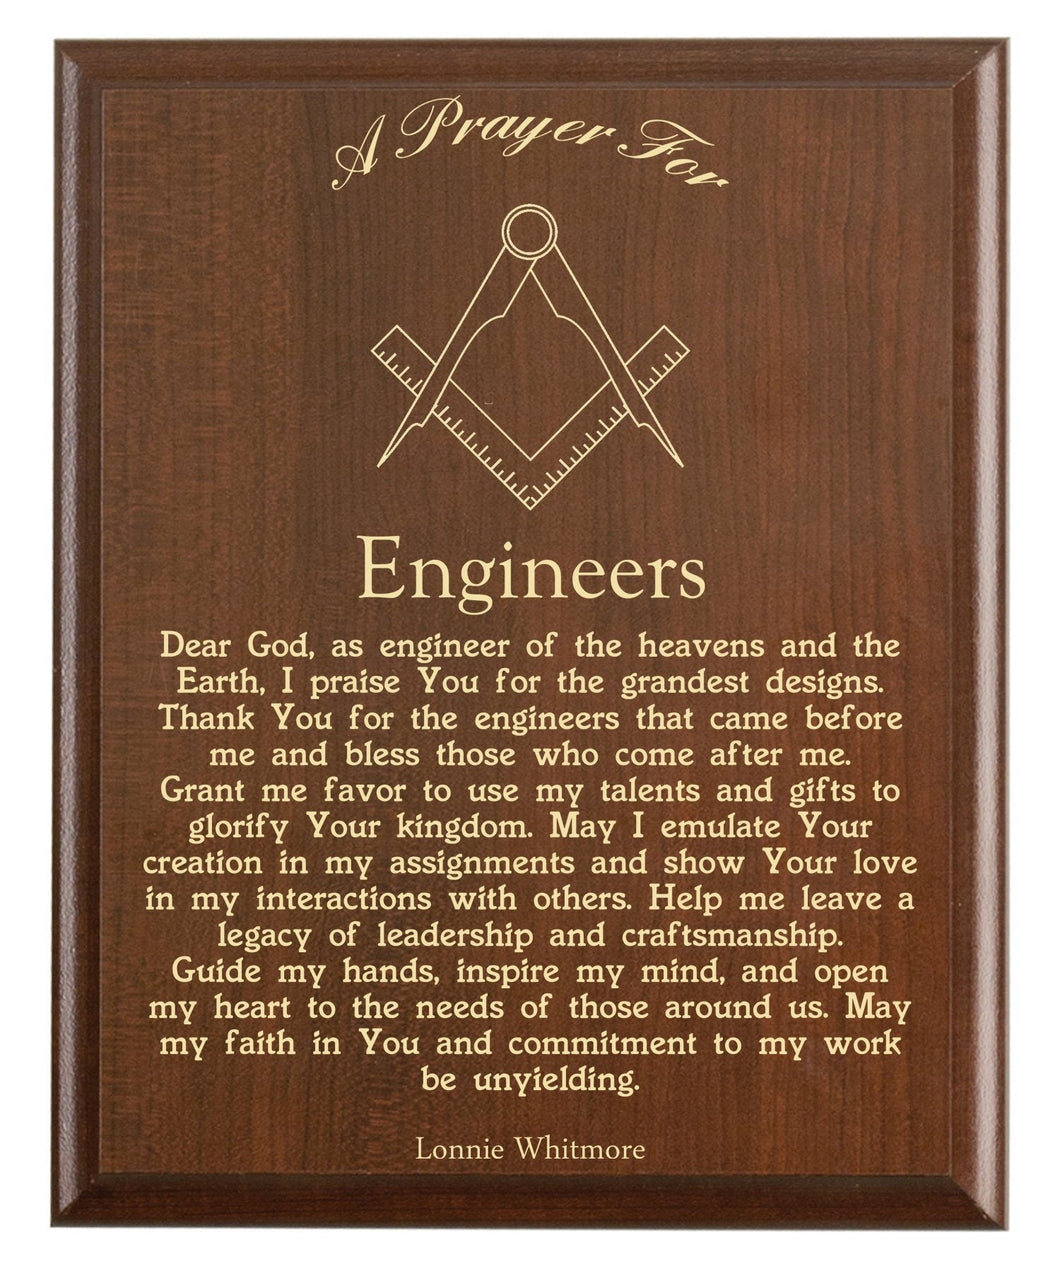 Christian prayer for an engineer with industry logo and free personalization. Cherry finish with laser engraved text.